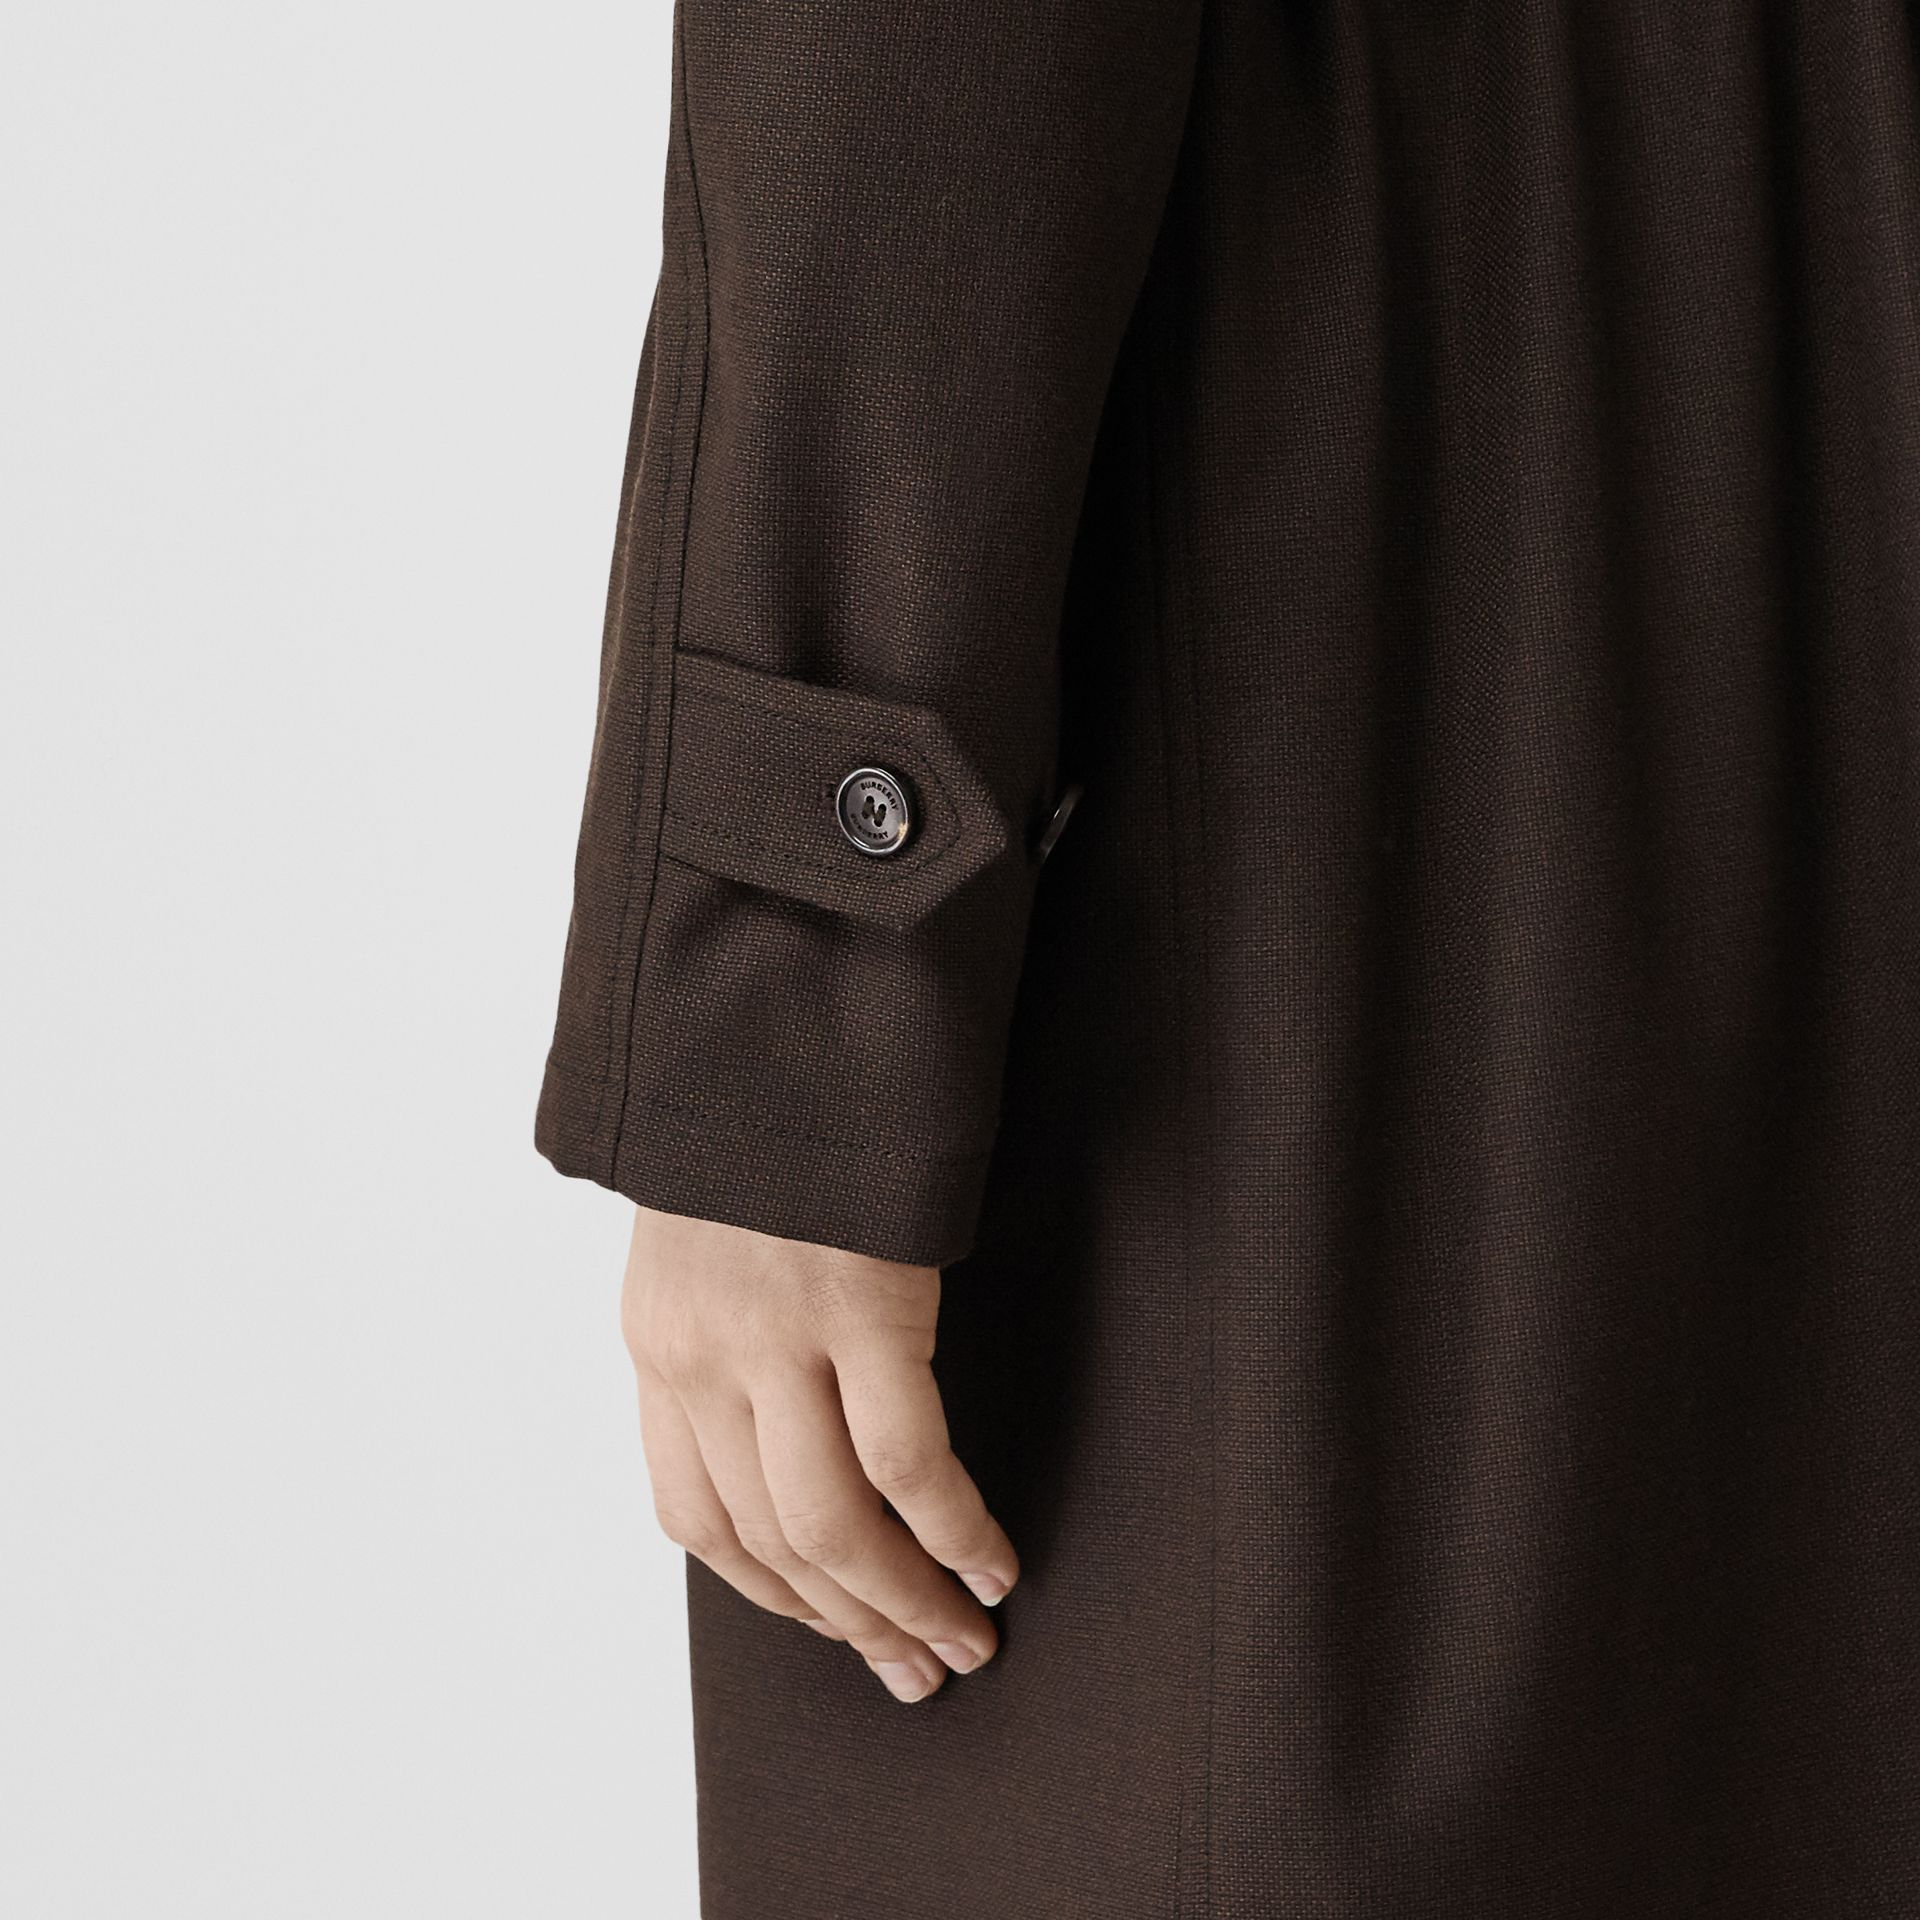 Scarf Detail Wool Car Coat in Coffee - Women | Burberry United States - gallery image 6